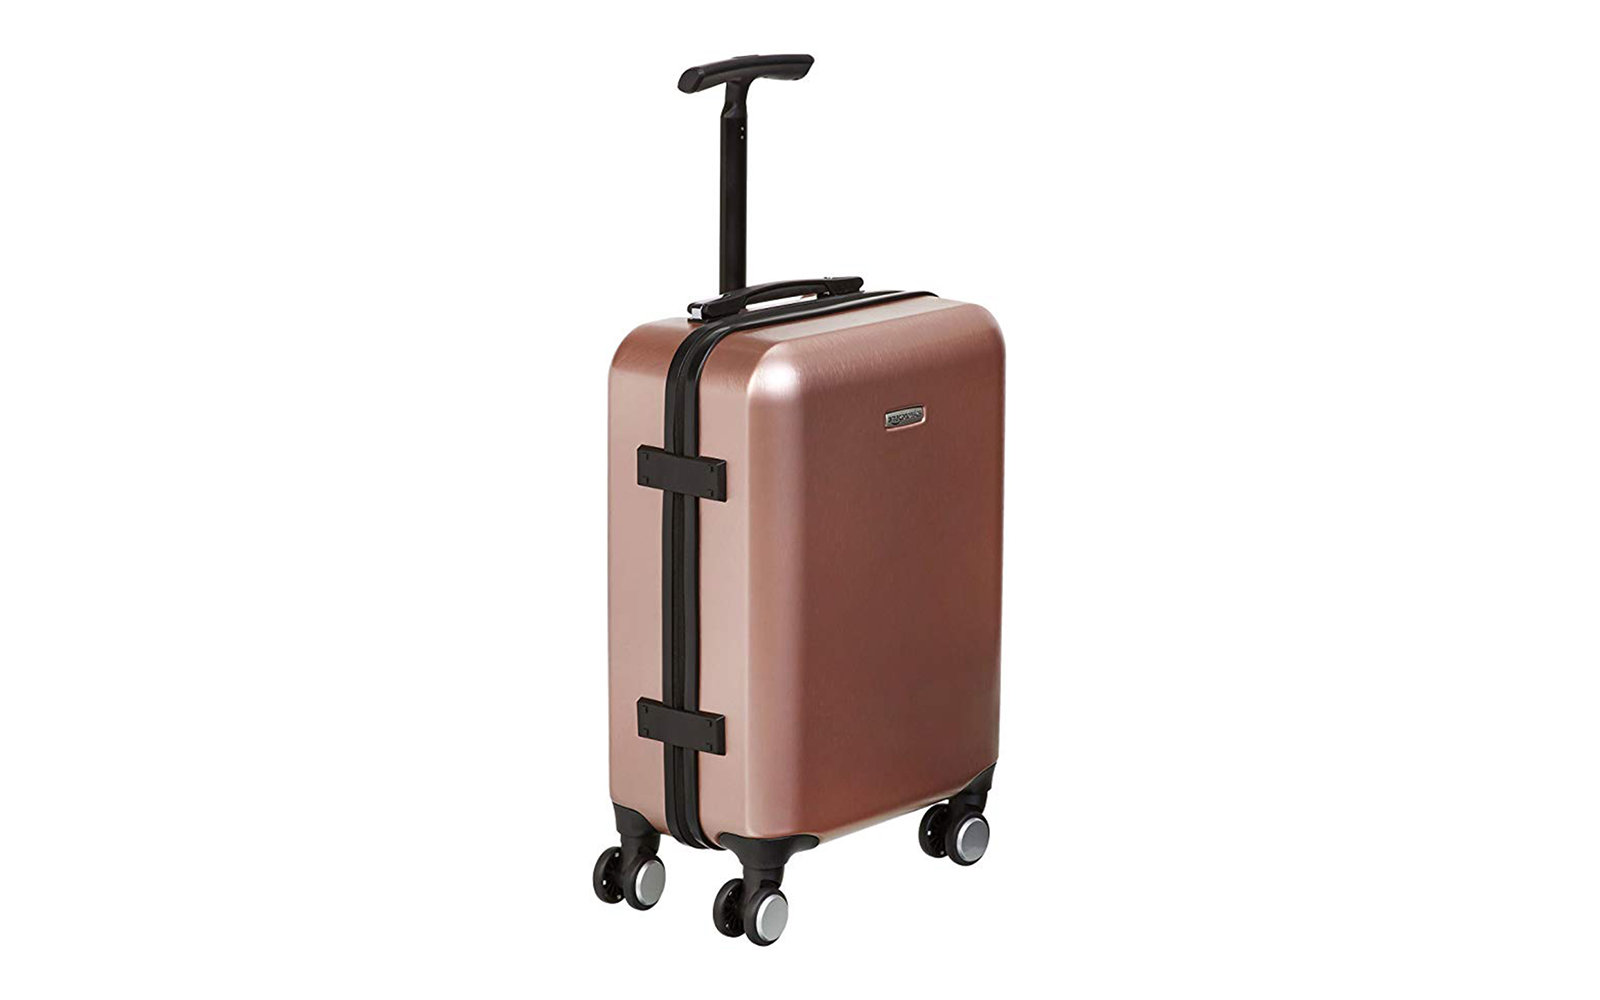 AmazonBasics Hardshell Spinner Suitcase with Built-In TSA Lock